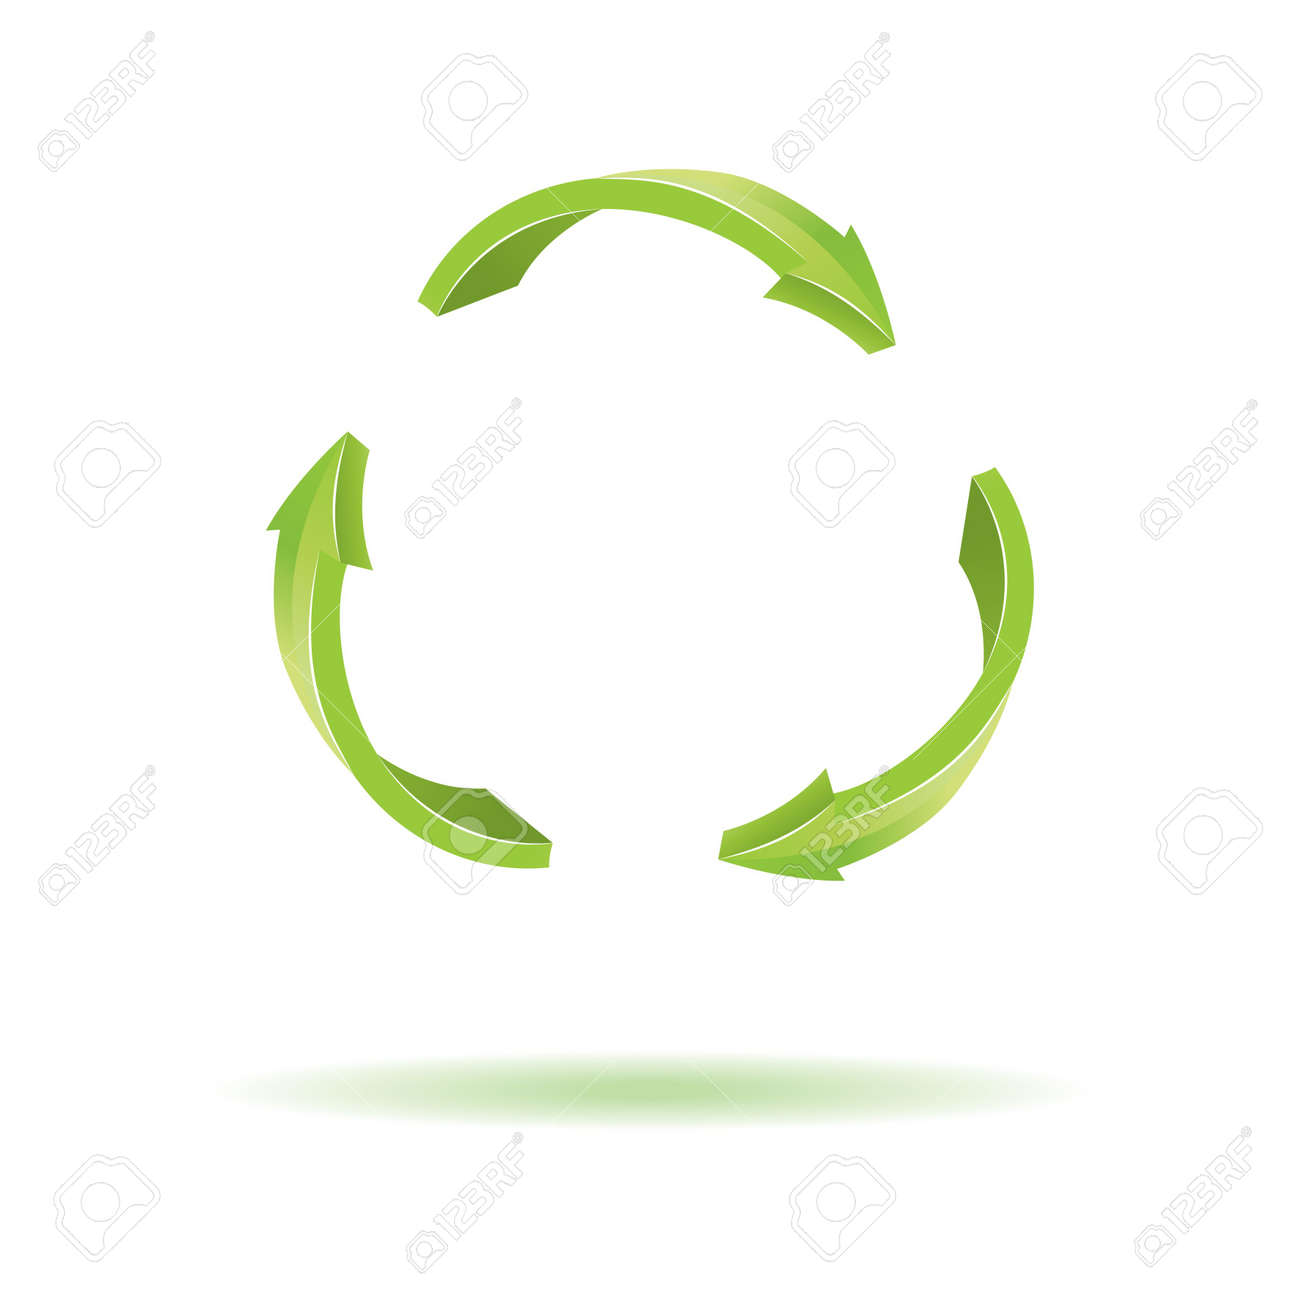 3d Arrows Recycle Symbol Royalty Free Cliparts Vectors And Stock